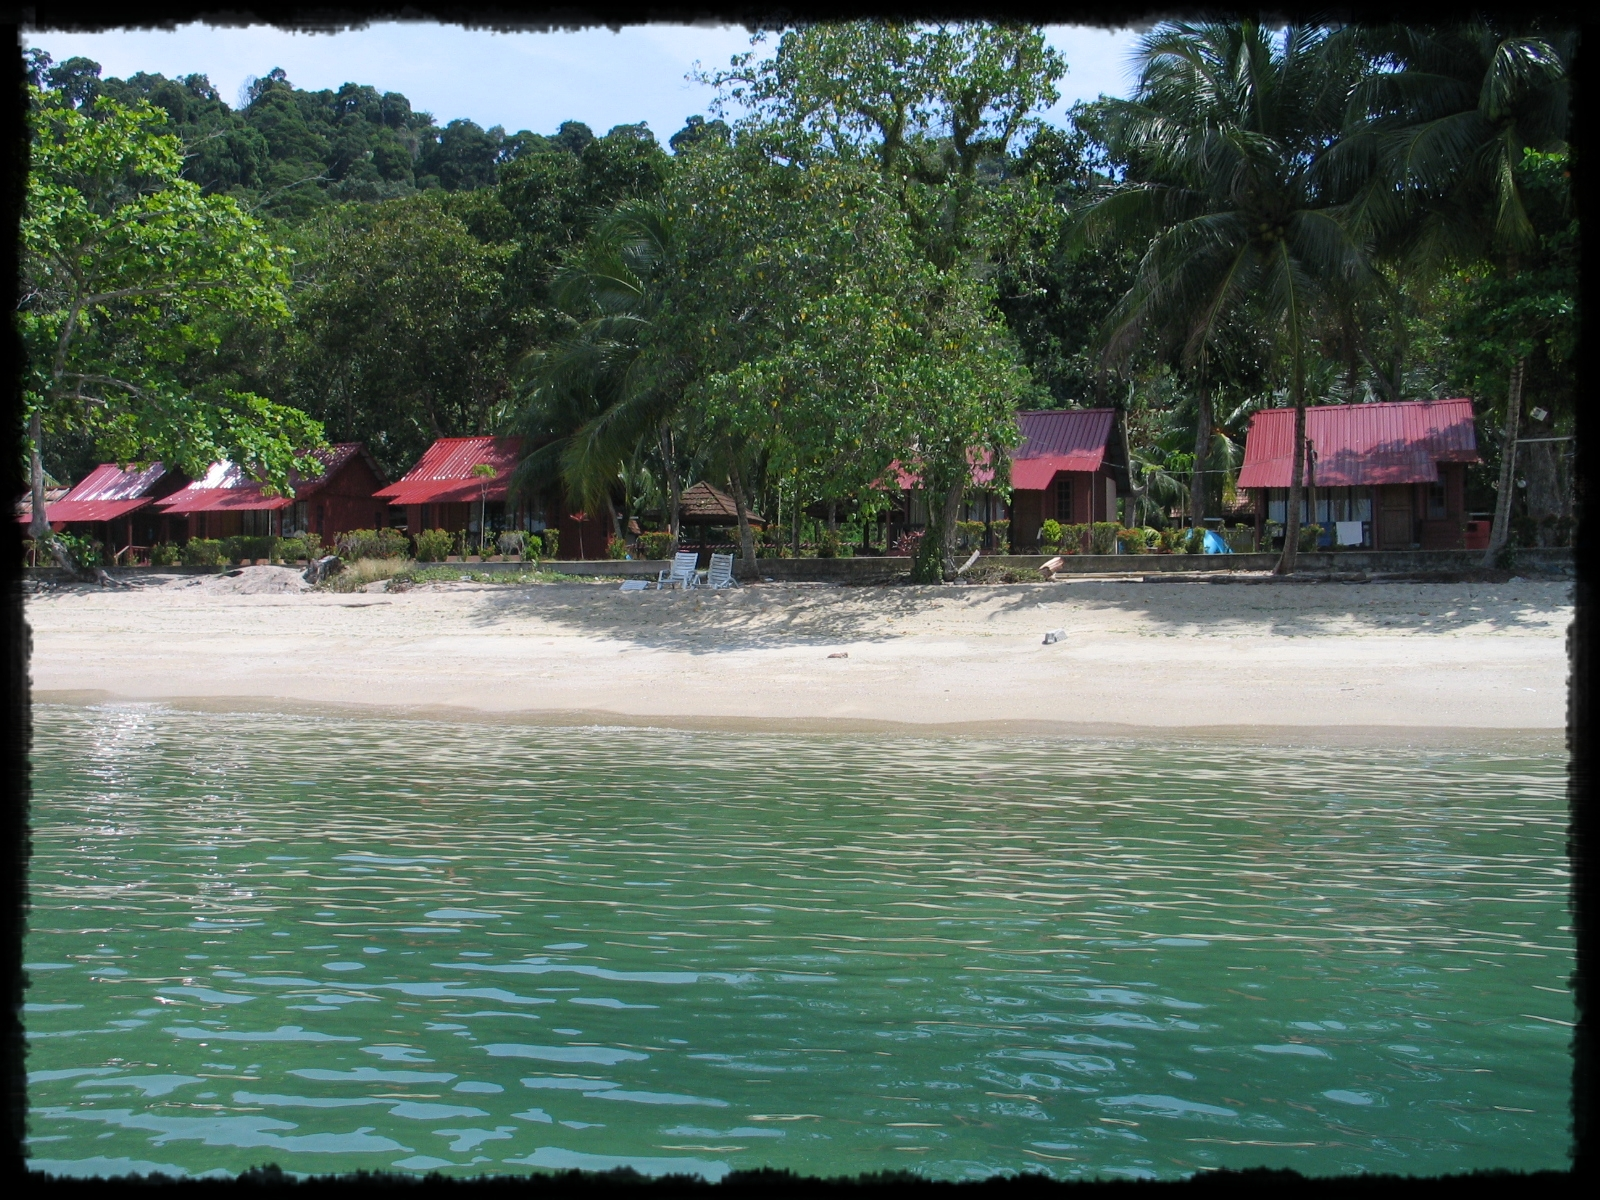 pangkor island Independent travel guide to pangkor island, includes up to date information on guesthouses and hotels, attractions and advice on travel, timetables and more.